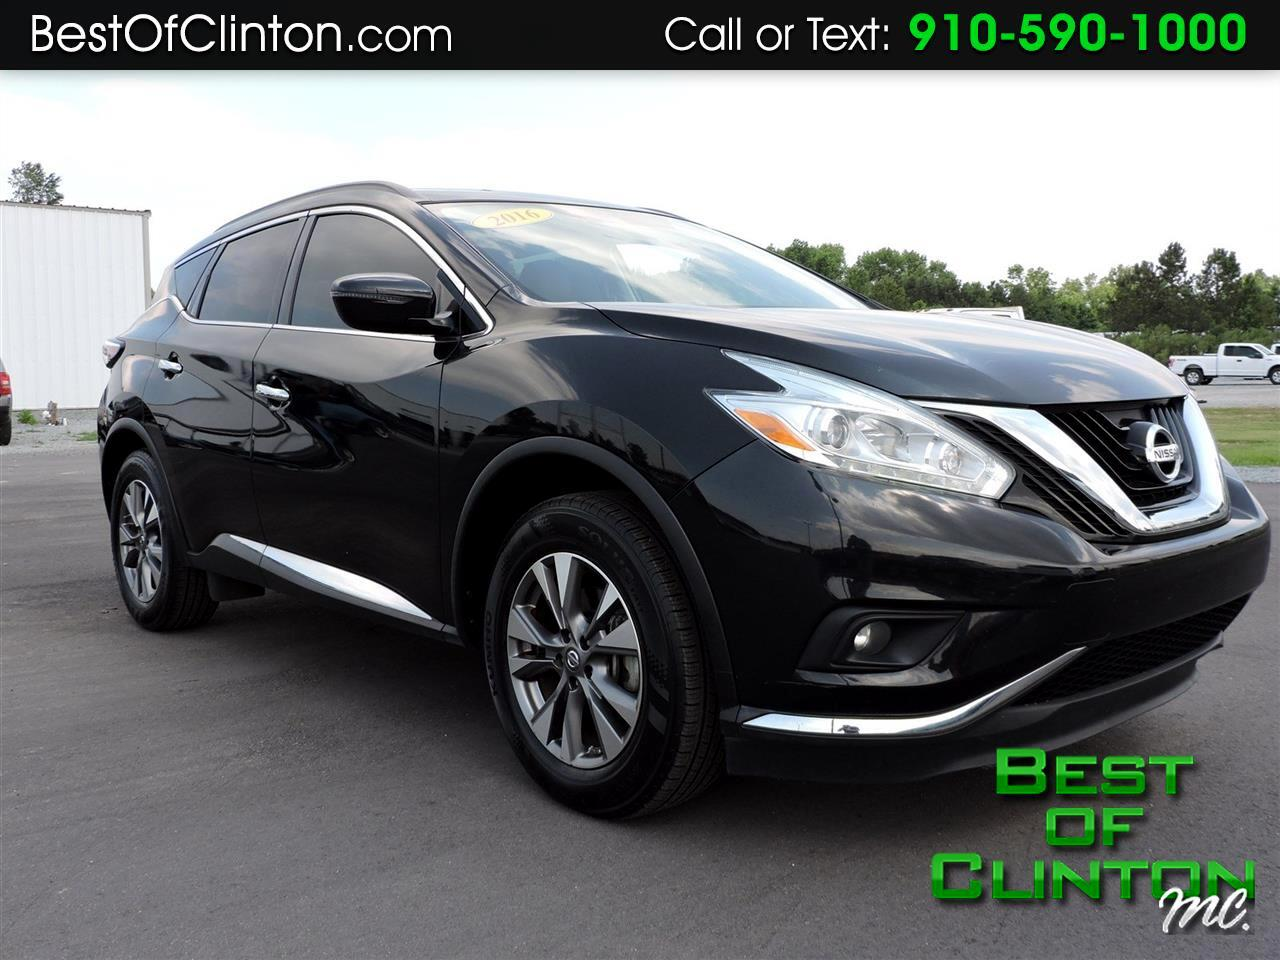 2016 Nissan Murano FWD 4dr S